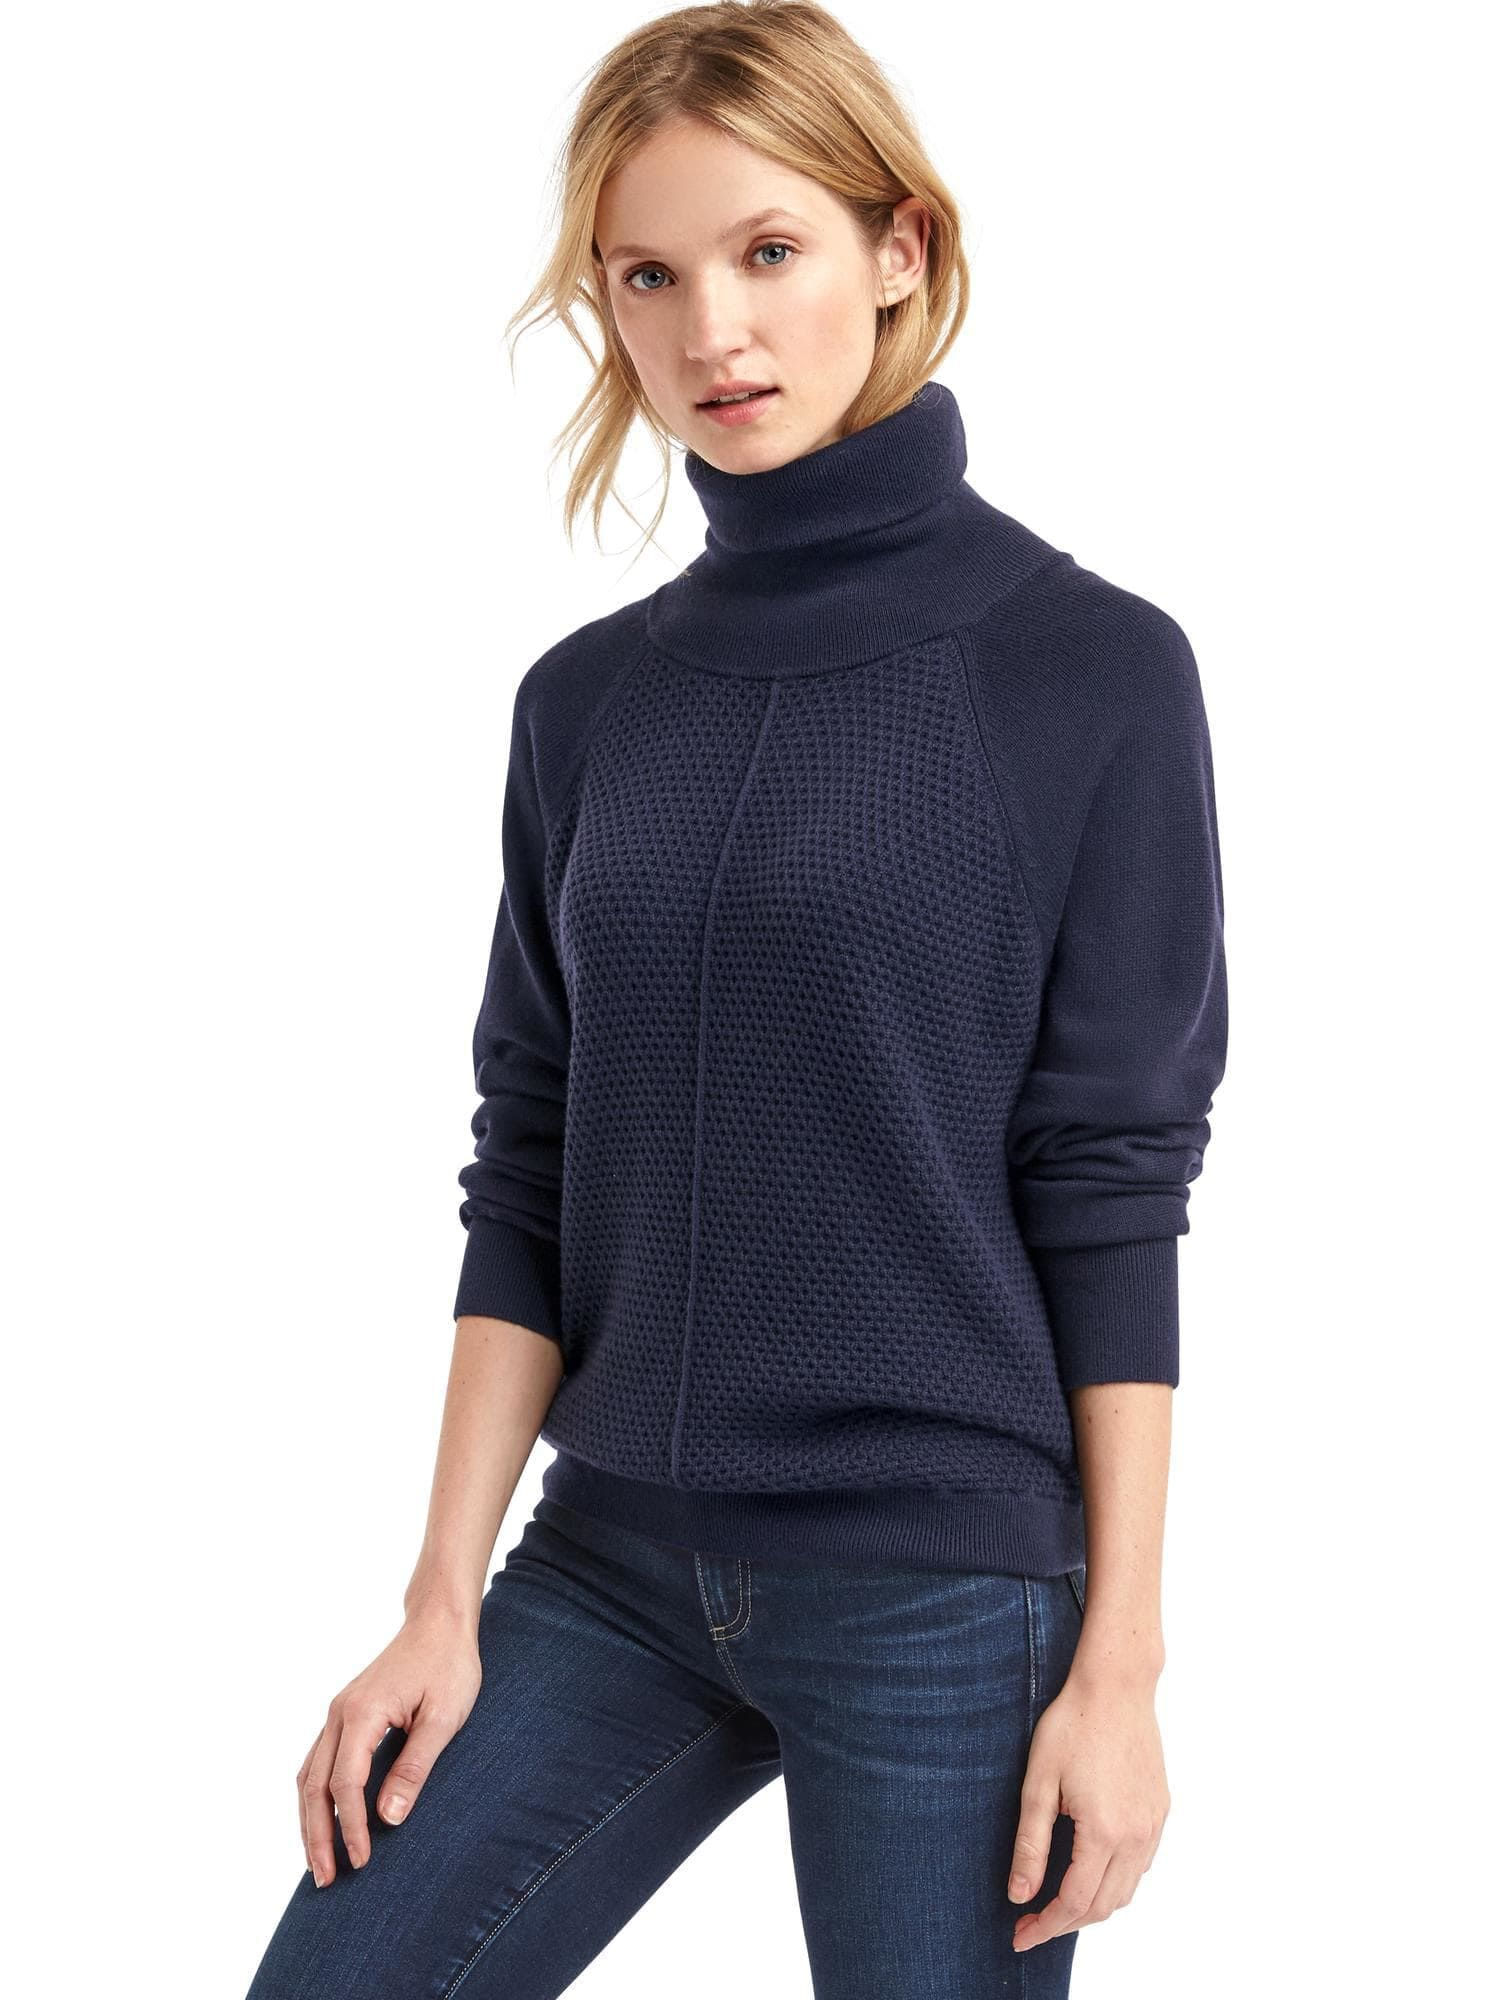 Image result for A Cozy Turtleneck